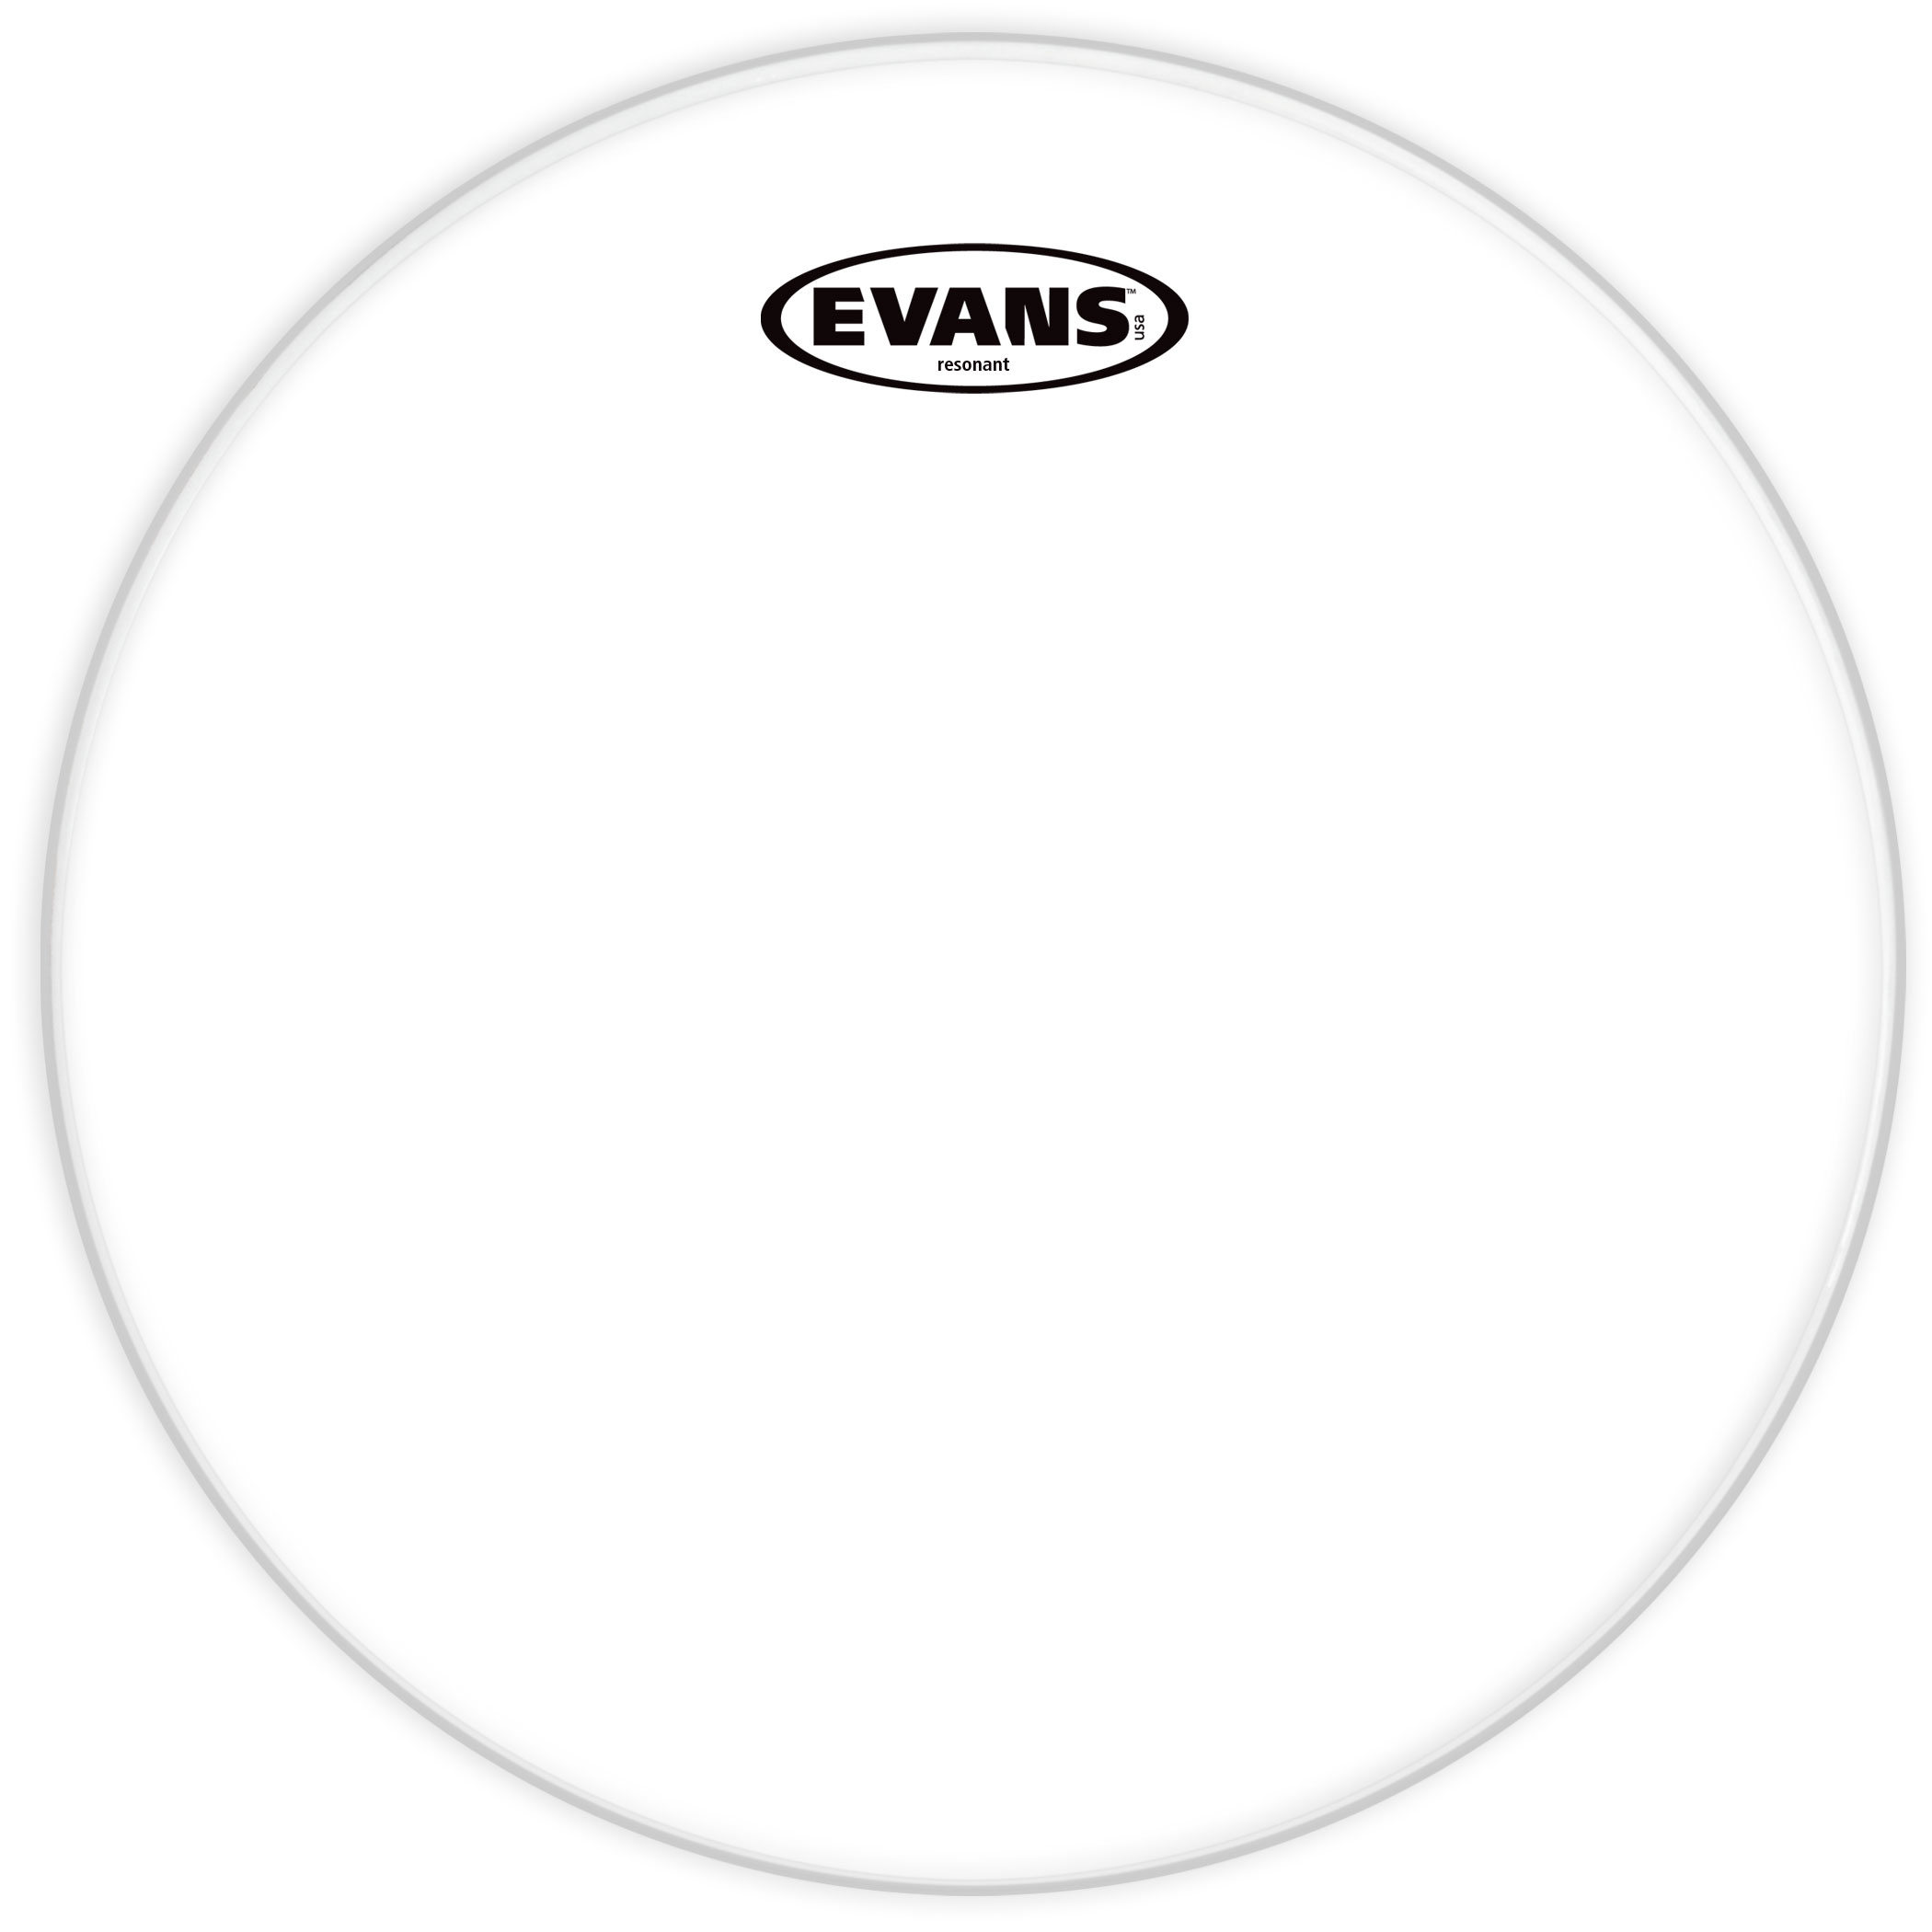 "Evans 13"" Resonant Glass Head"